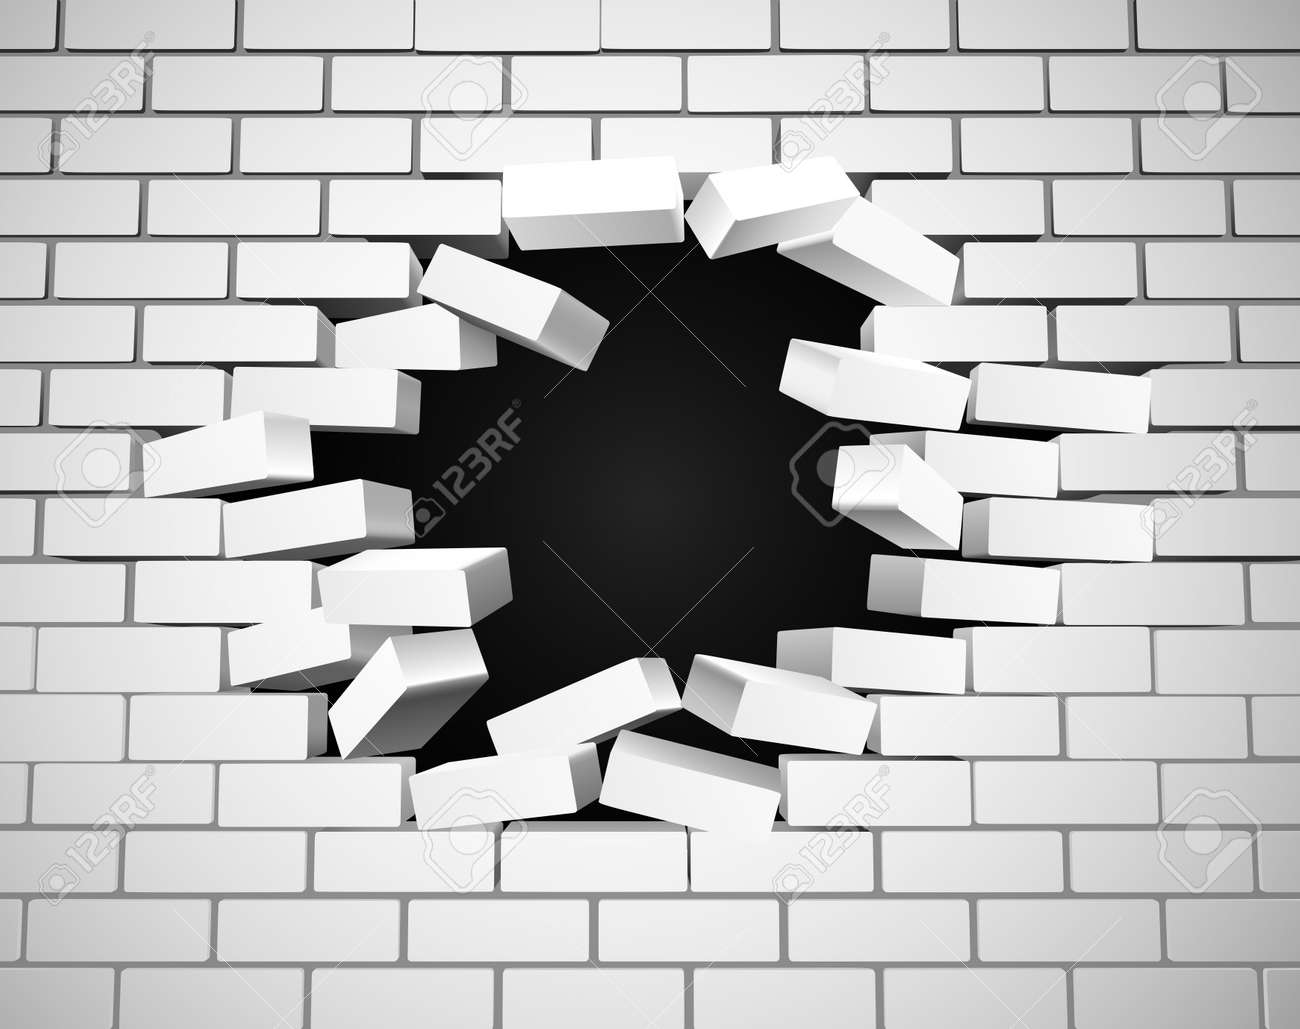 A white wall being smashed or breaking apart - 53120722